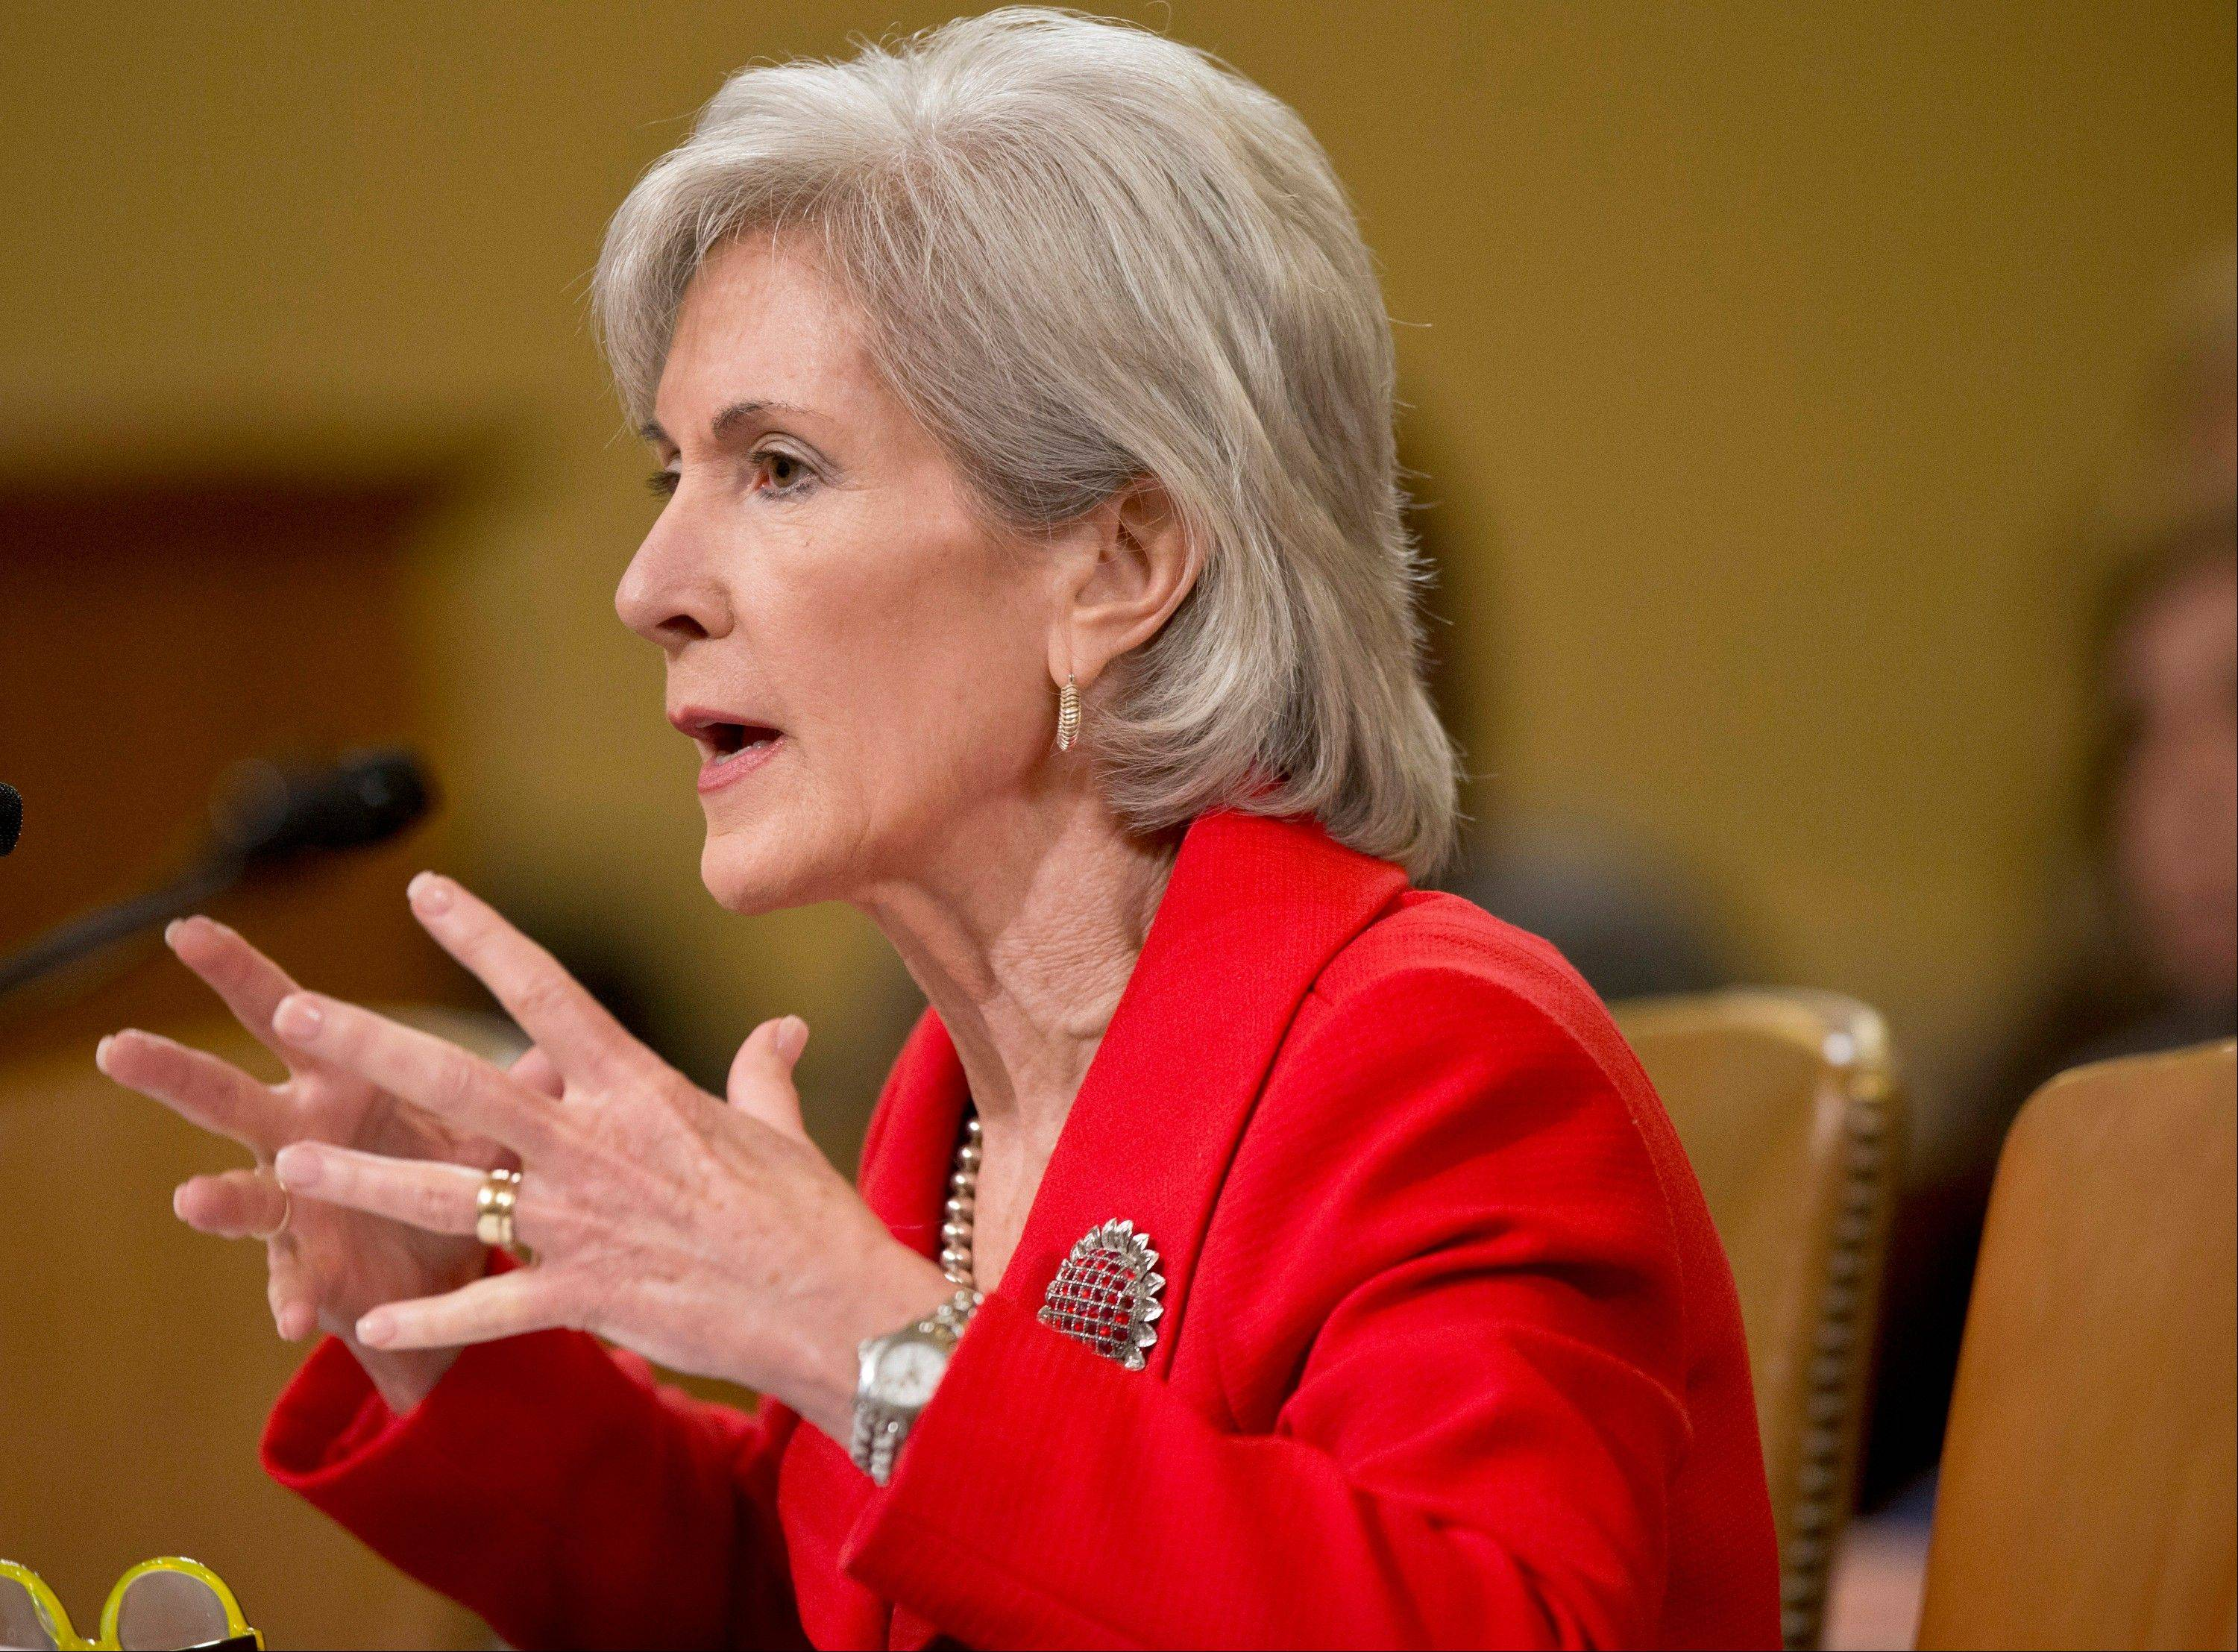 "Health and Human Services Secretary Kathleen Sebelius. State officials say thousands of people with medical problems are in danger of losing coverage as the Obama administration winds down one of the earliest programs in the federal health care overhaul. At risk is the Pre-Existing Condition Insurance Plan, a transition program that has turned into a lifeline for the so-called ""uninsurables"" — people with serious medical conditions who can't get coverage elsewhere. The health care law capped spending on the program, and now money is running out."